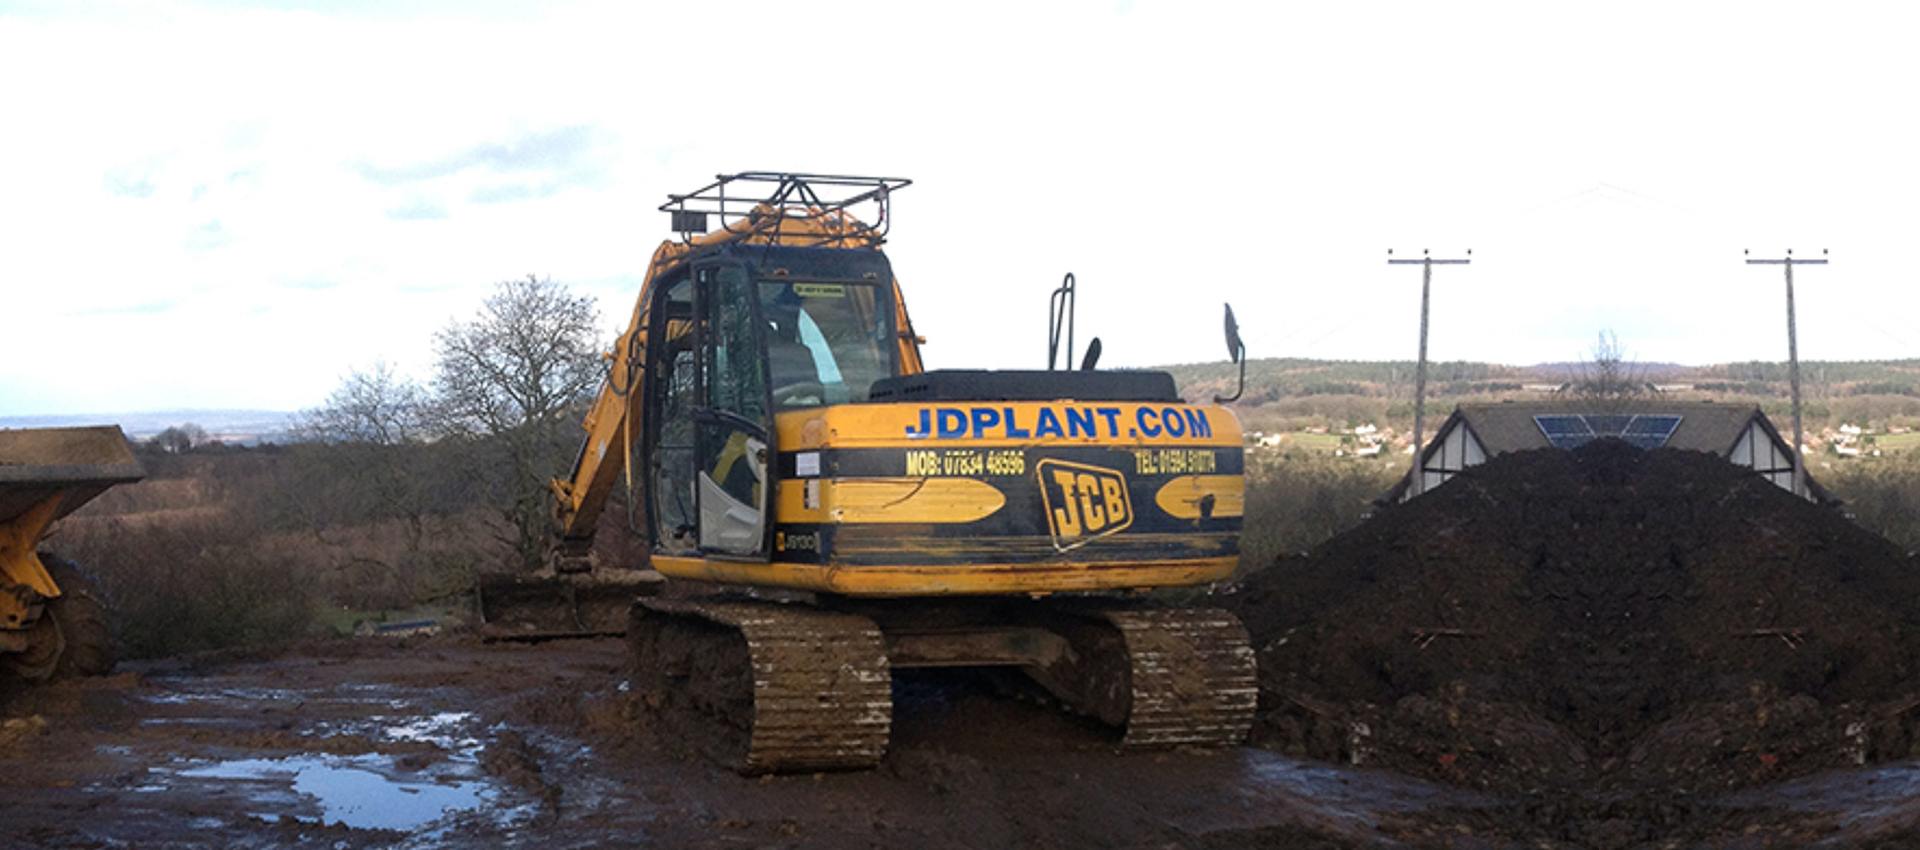 JD Plant Groundworks excavator from behind